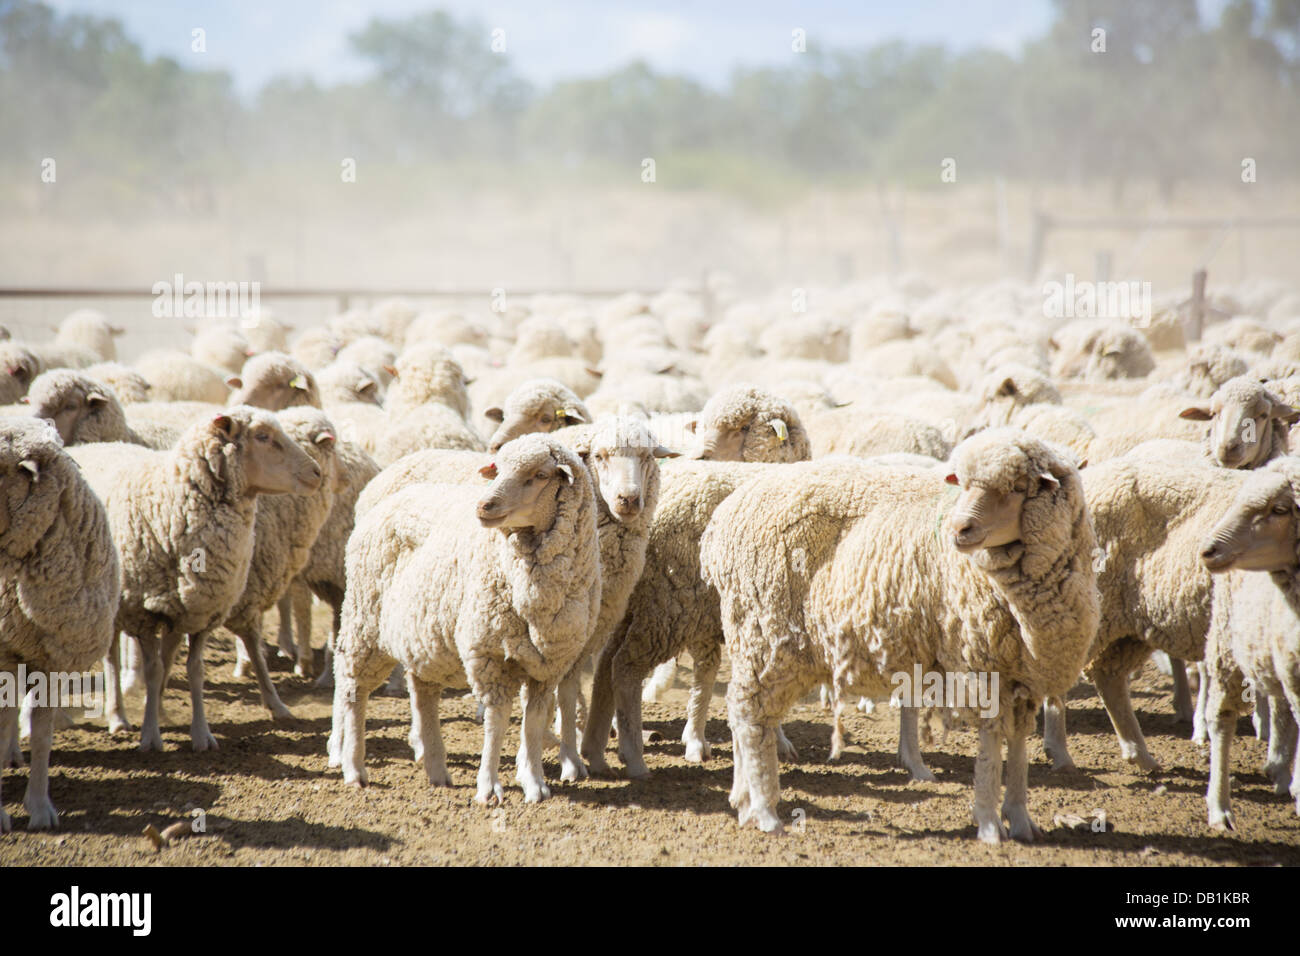 Mob of merino sheep in dry, barren, drought conditions in outback Queensland, Australia - Stock Image